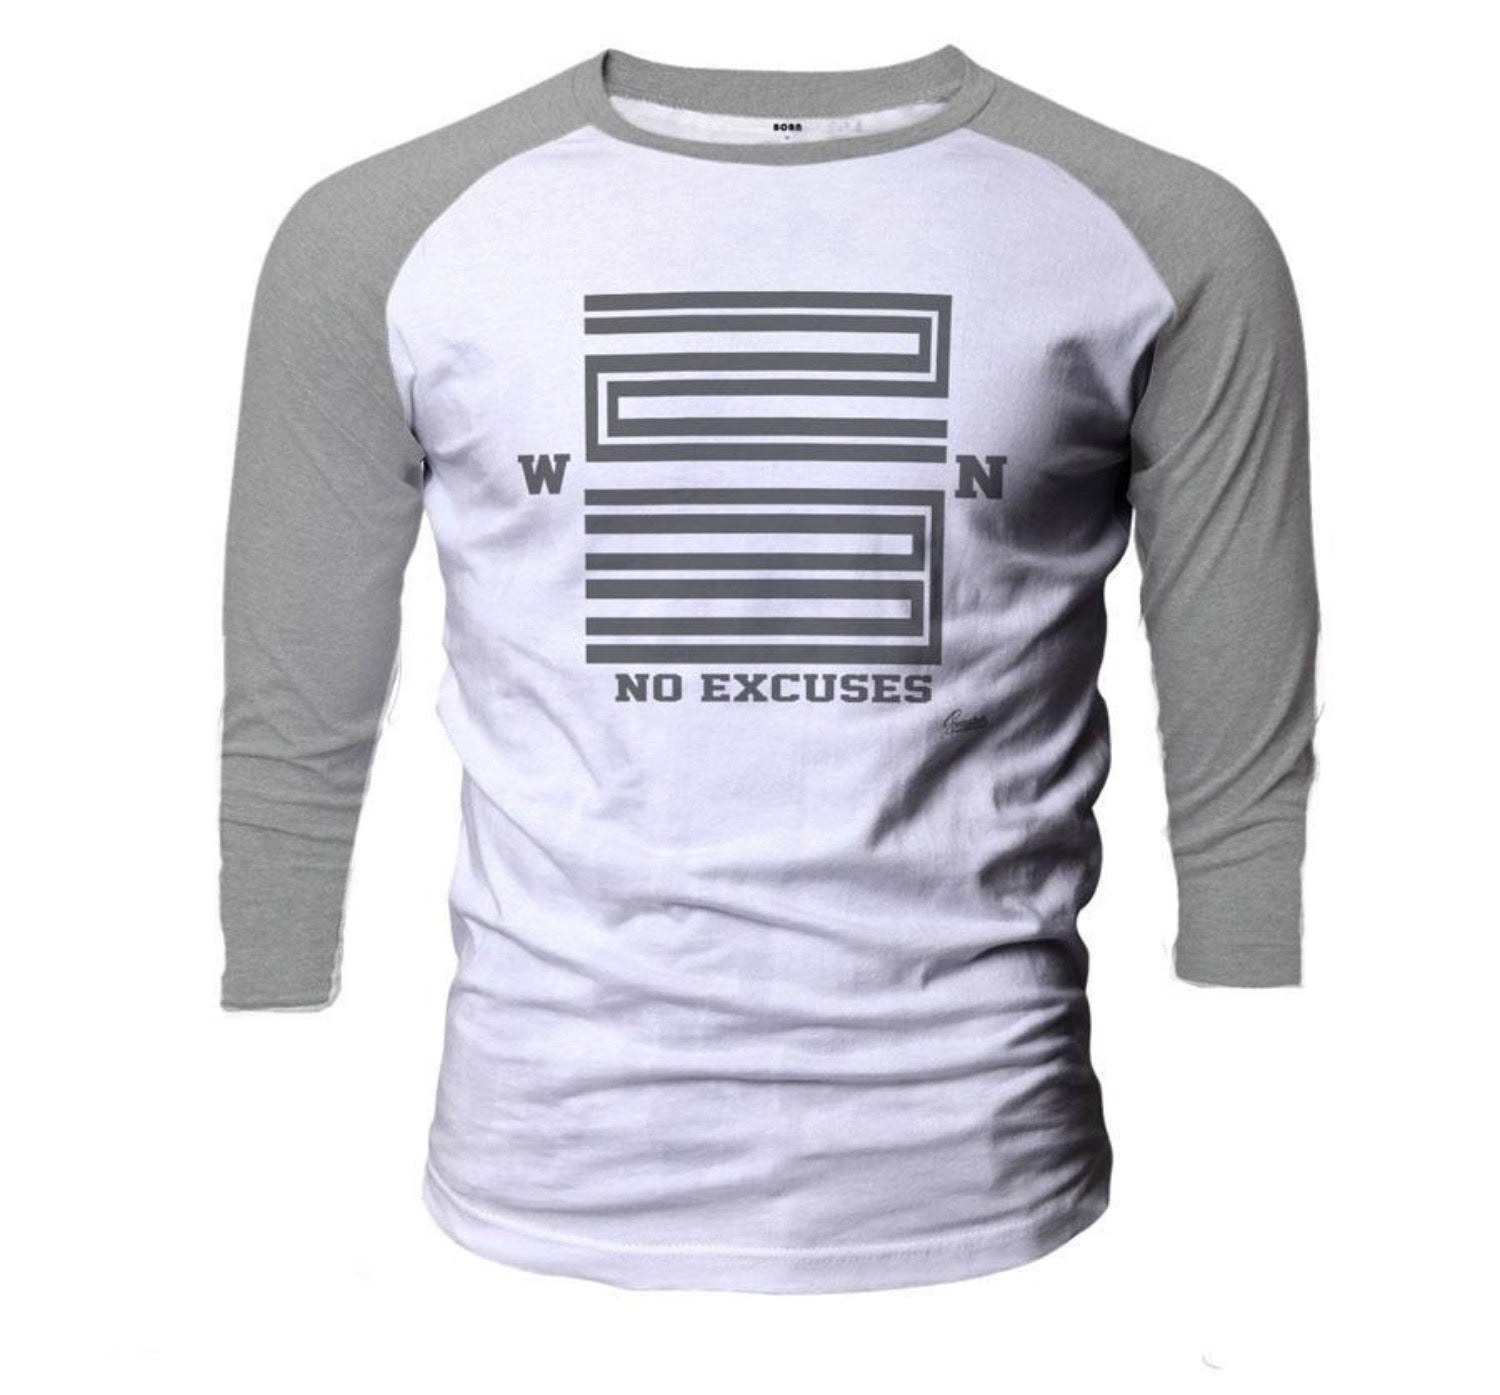 Jordan 11 cool grey raglan shirt match retro 11 cool grey.